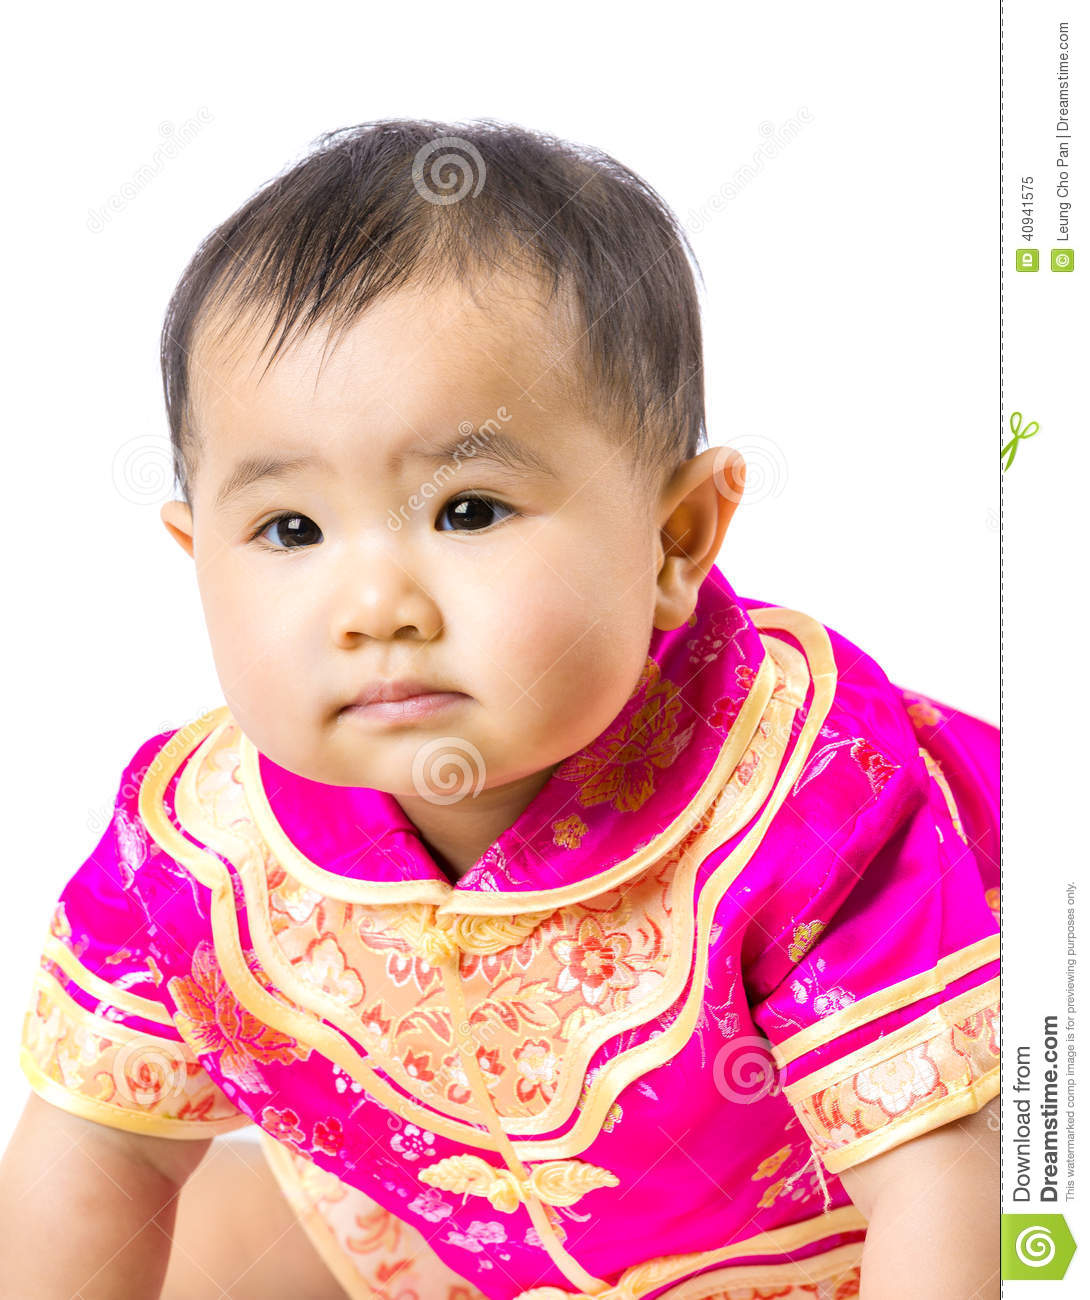 Chinese baby girl with traditional costume